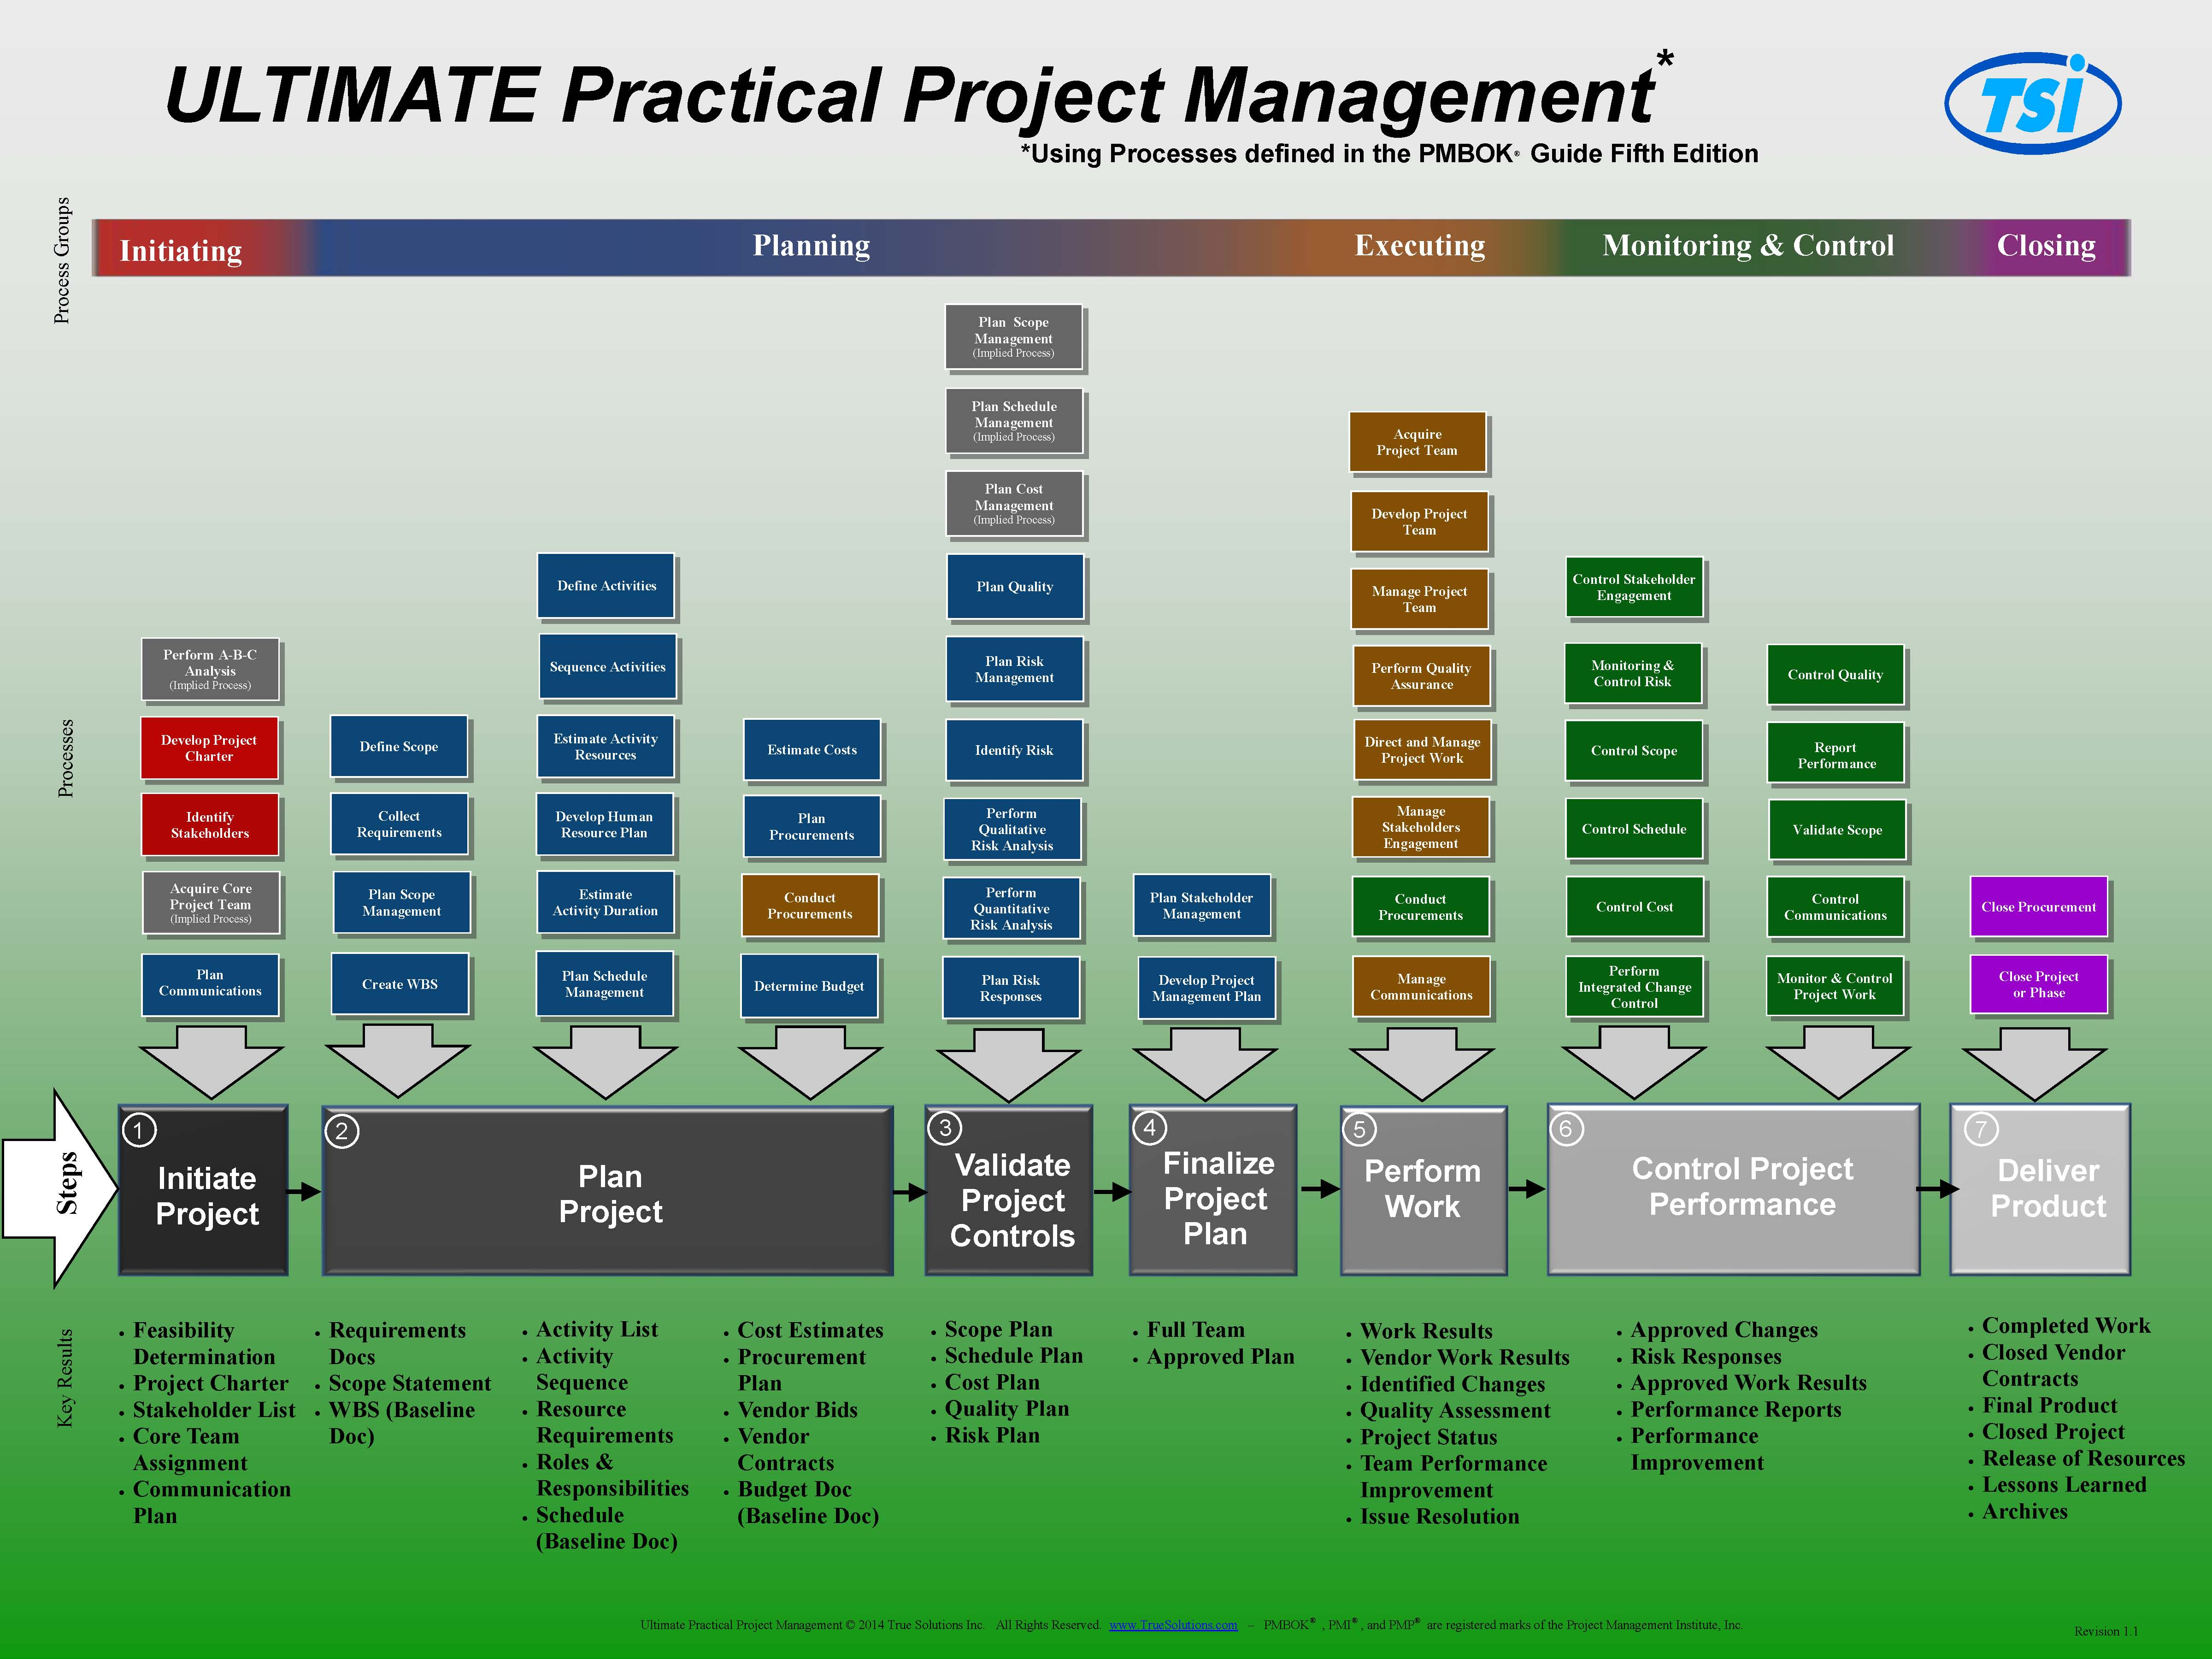 Project Management Training With Project Management Templates Pmbok